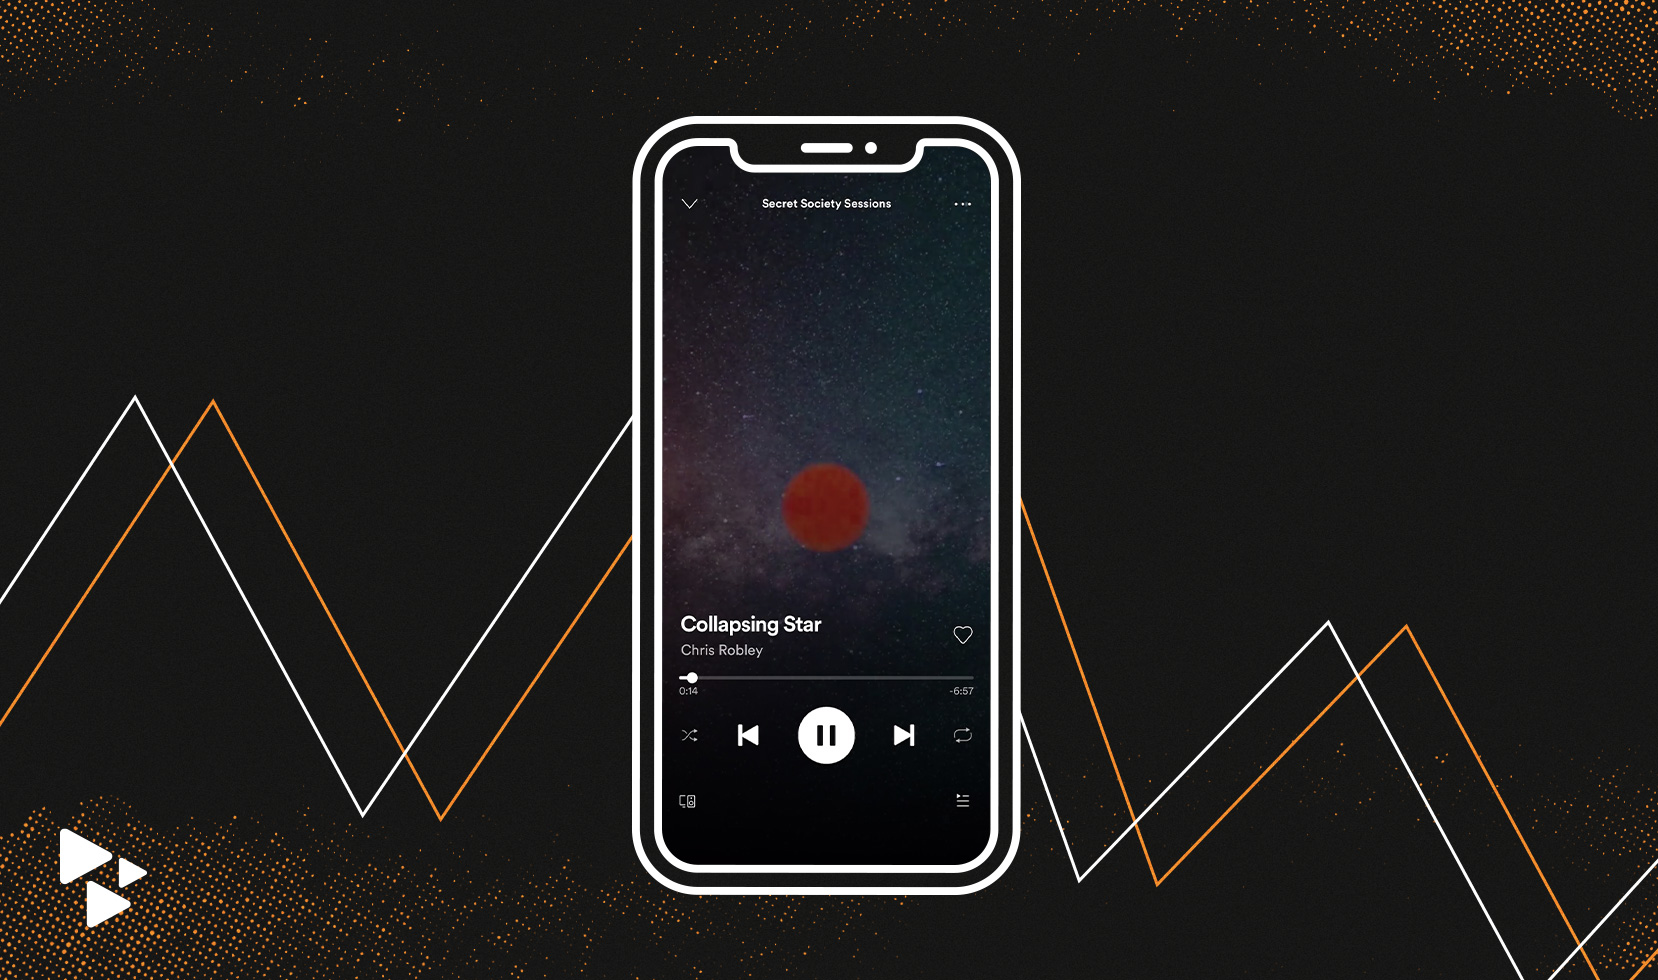 Spotify Canvas: Short looped videos on Spotify